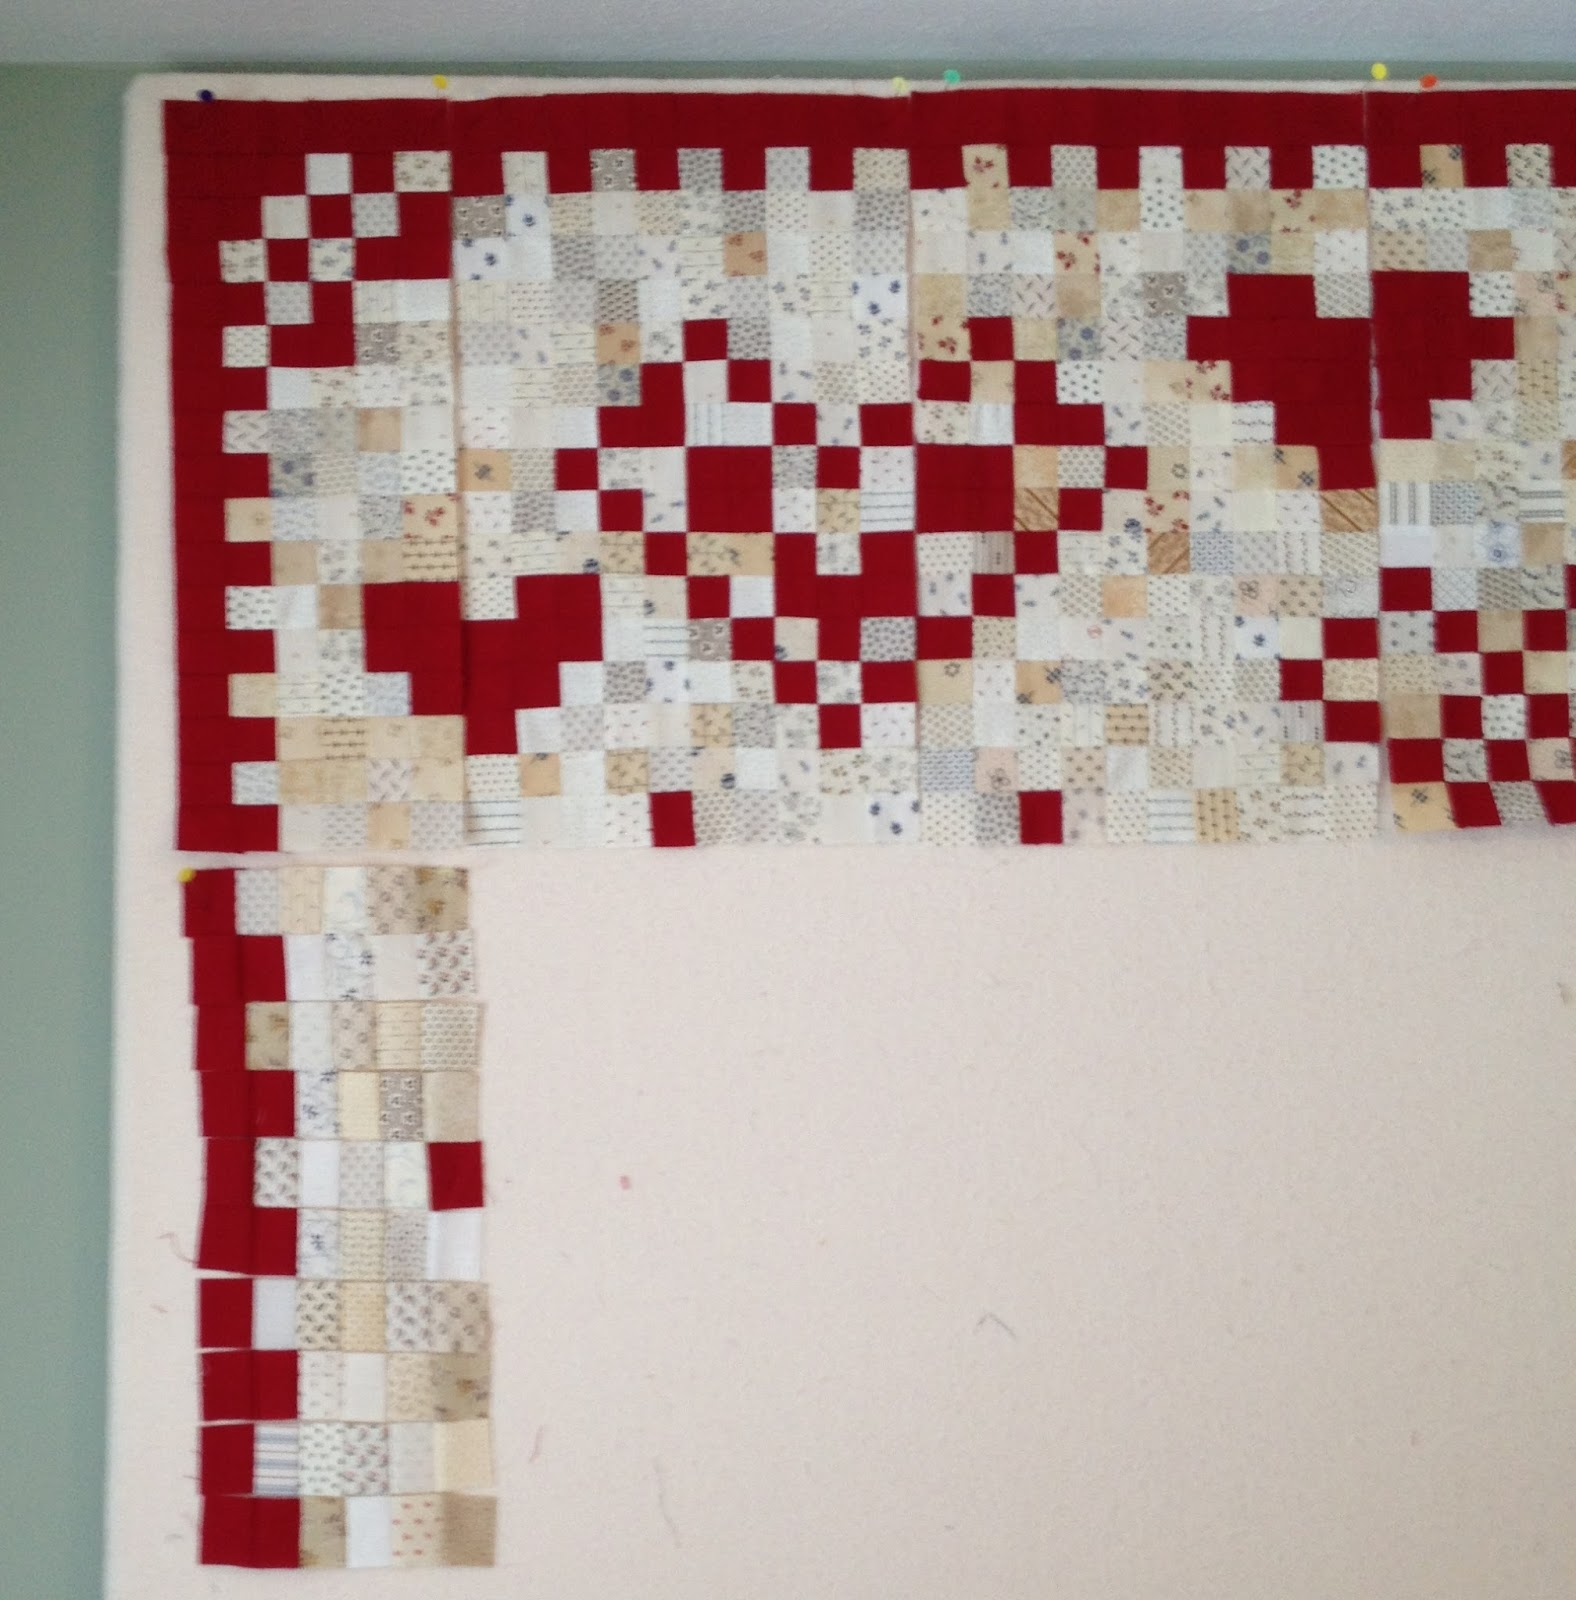 Design Wall For Quilting small quilts and doll quilts: design wall mondays - may 22, 2017